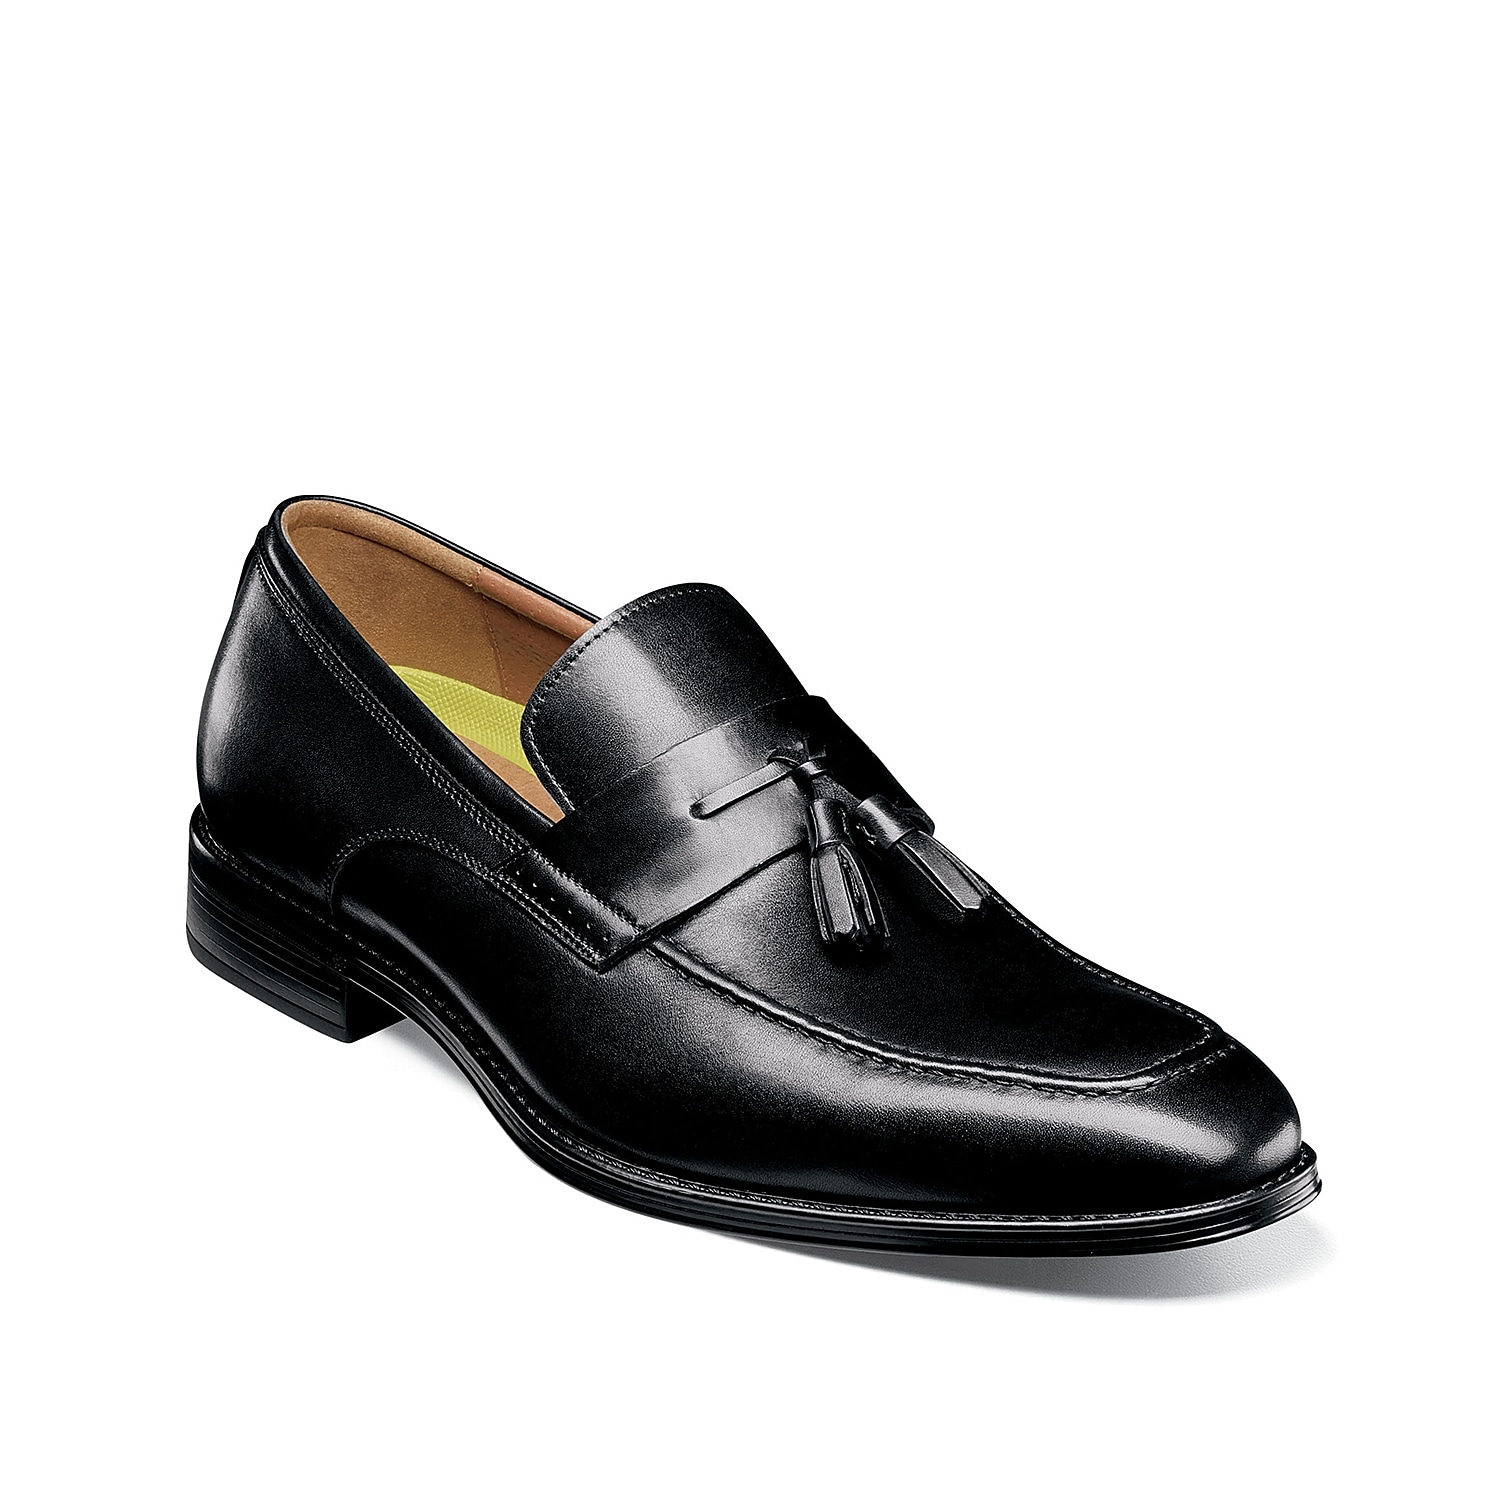 Highlight your sophisticated style in the Amelio loafers from Florsheim. These slip-ons feature a modern square toe design and tassel detailing for an extra pop.